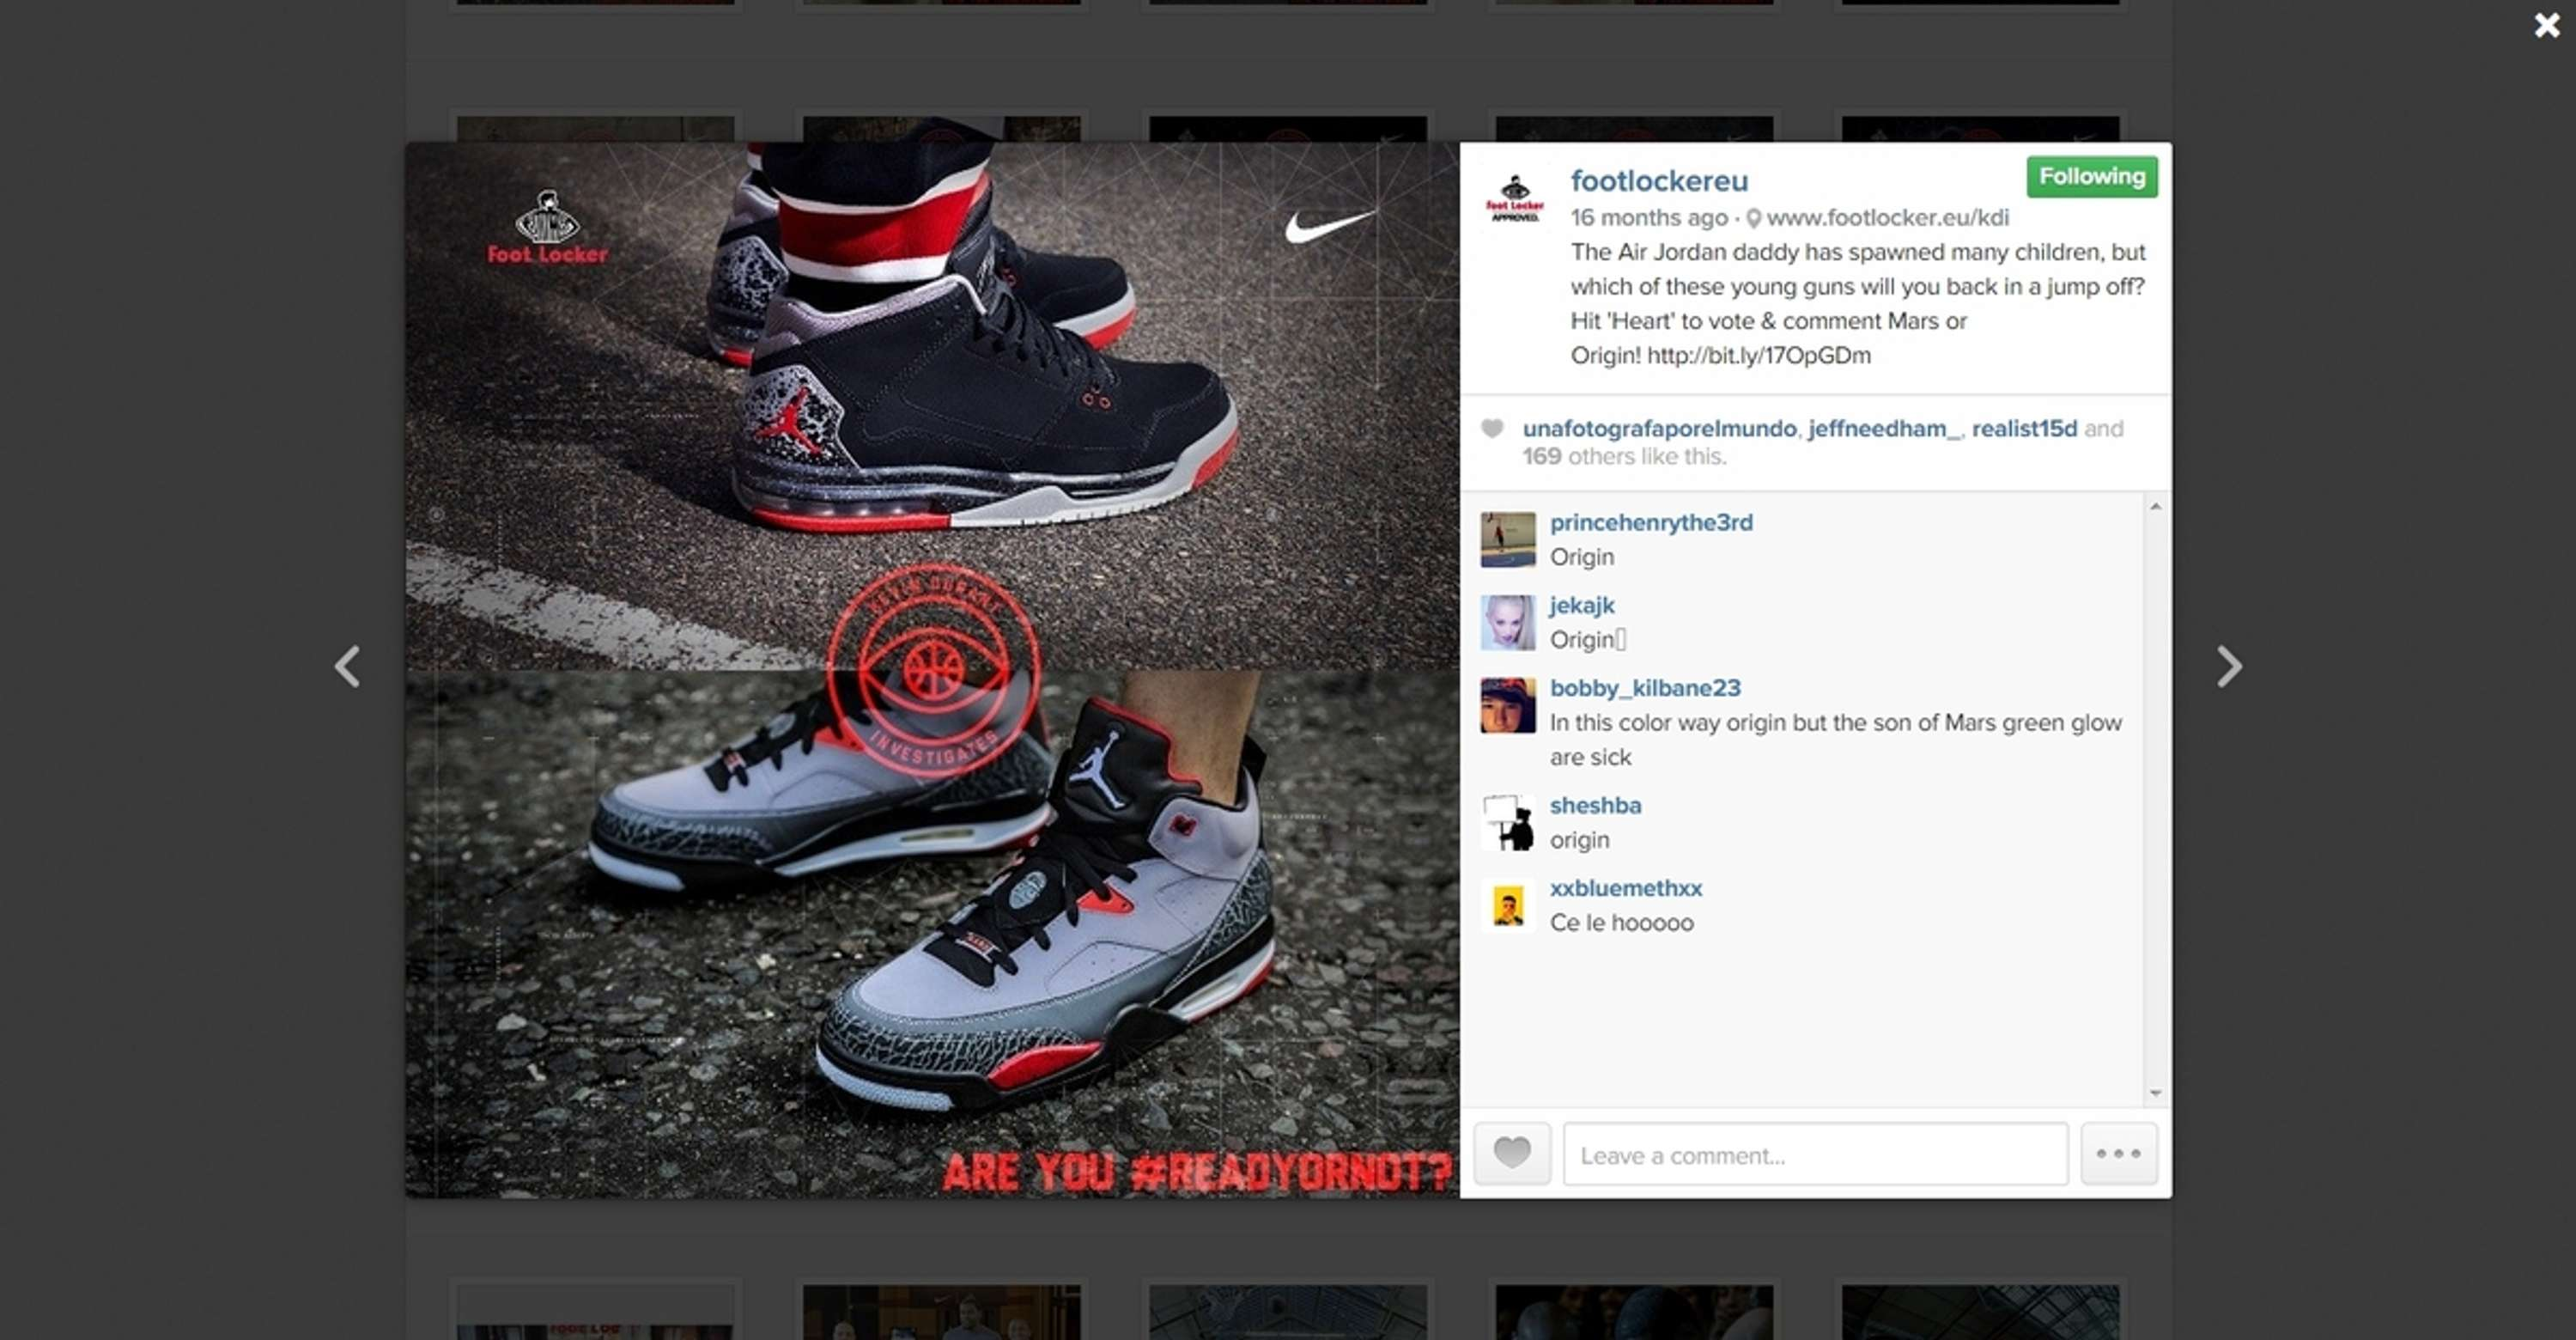 432a7371a8bd Write copy and create visuals for Nike Footlocker campaign.